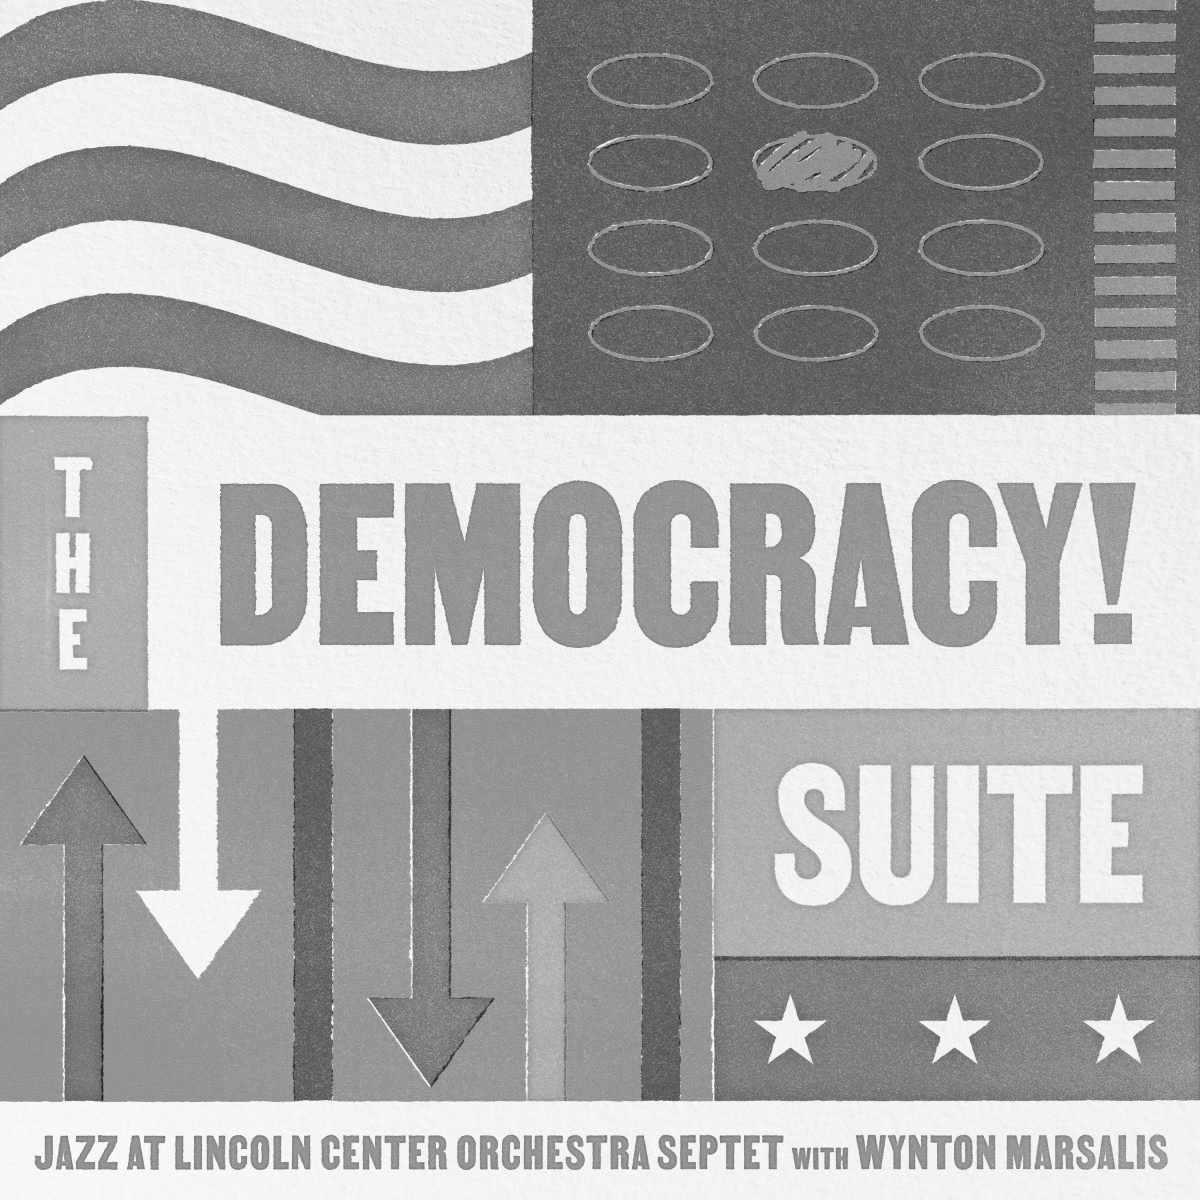 """Album cover for The Democracy! Suite by Wynton Marsalis. In the center reads """"The Democracy! Suite"""" in blocky letters. Above this is a backwards American flag, but instead of stars there are bubbles like on a multiple choice test, with one of the bubbles scratched in. Below the letters are arrows going up and down on the left and stars on the right. At the bottom reads """"Jazz at Lincoln Center Orchestra Septet with Wynton Marsalis."""